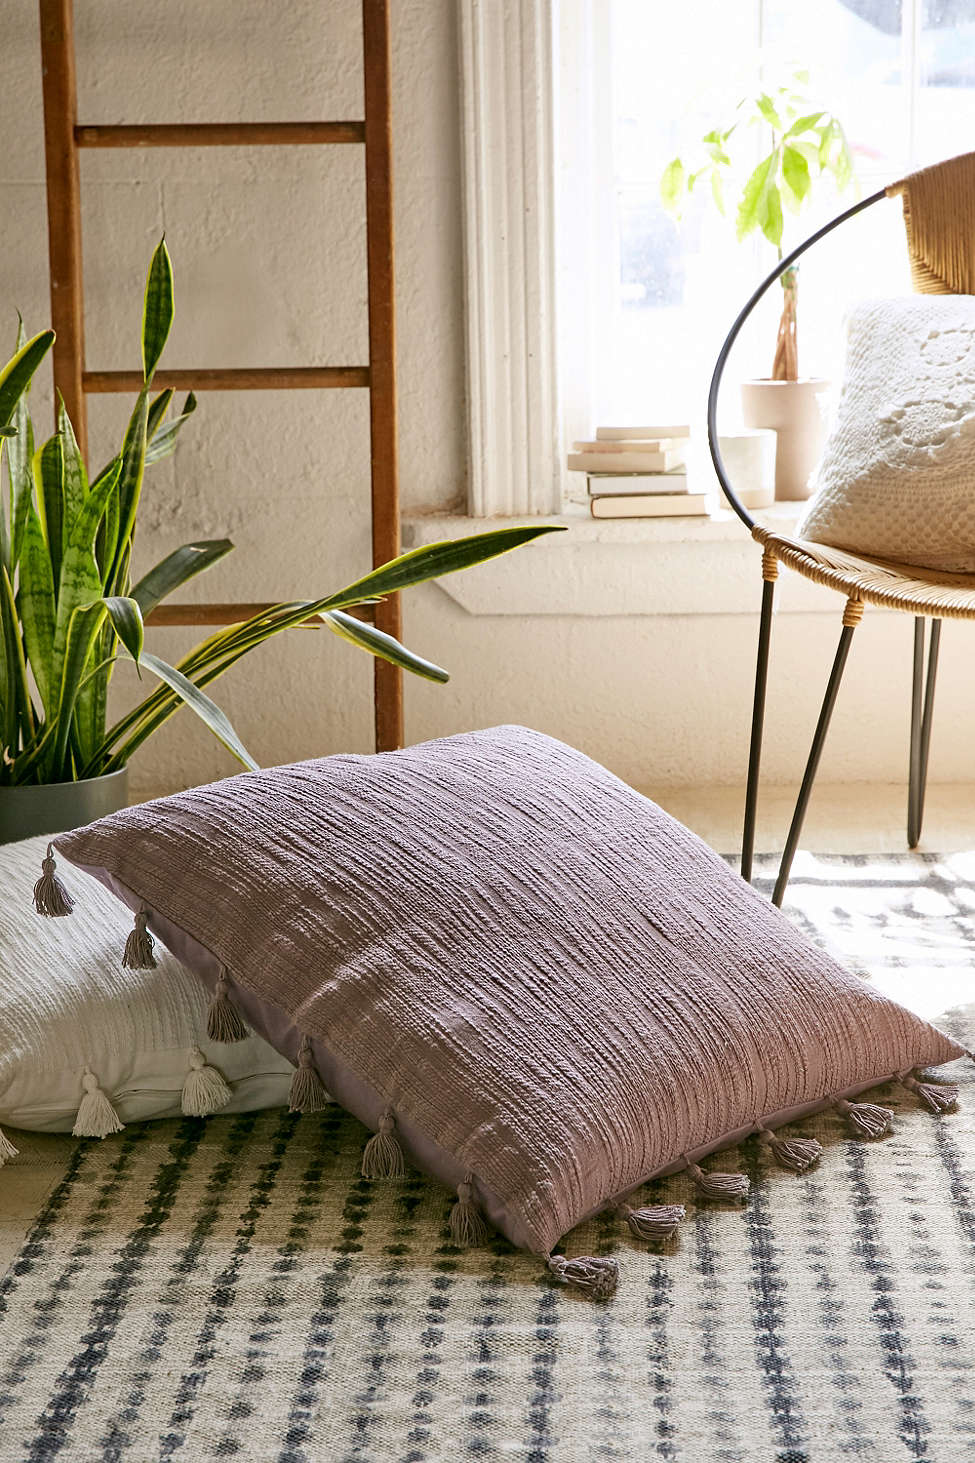 Tasseled pillows from Urban Outfitters